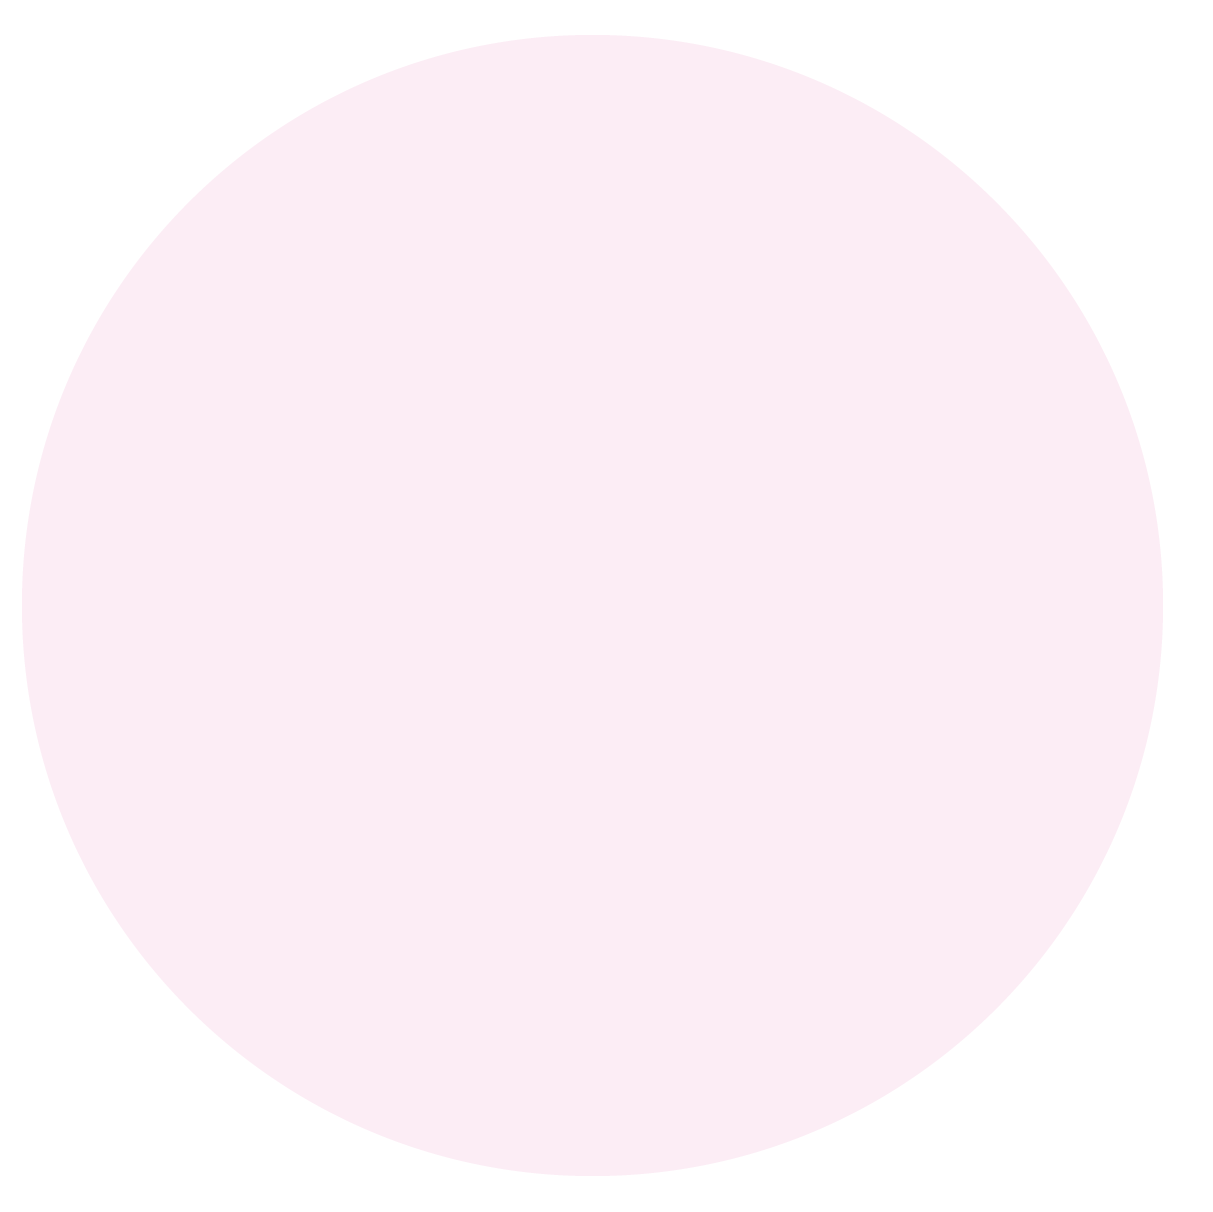 Large pink circle for background